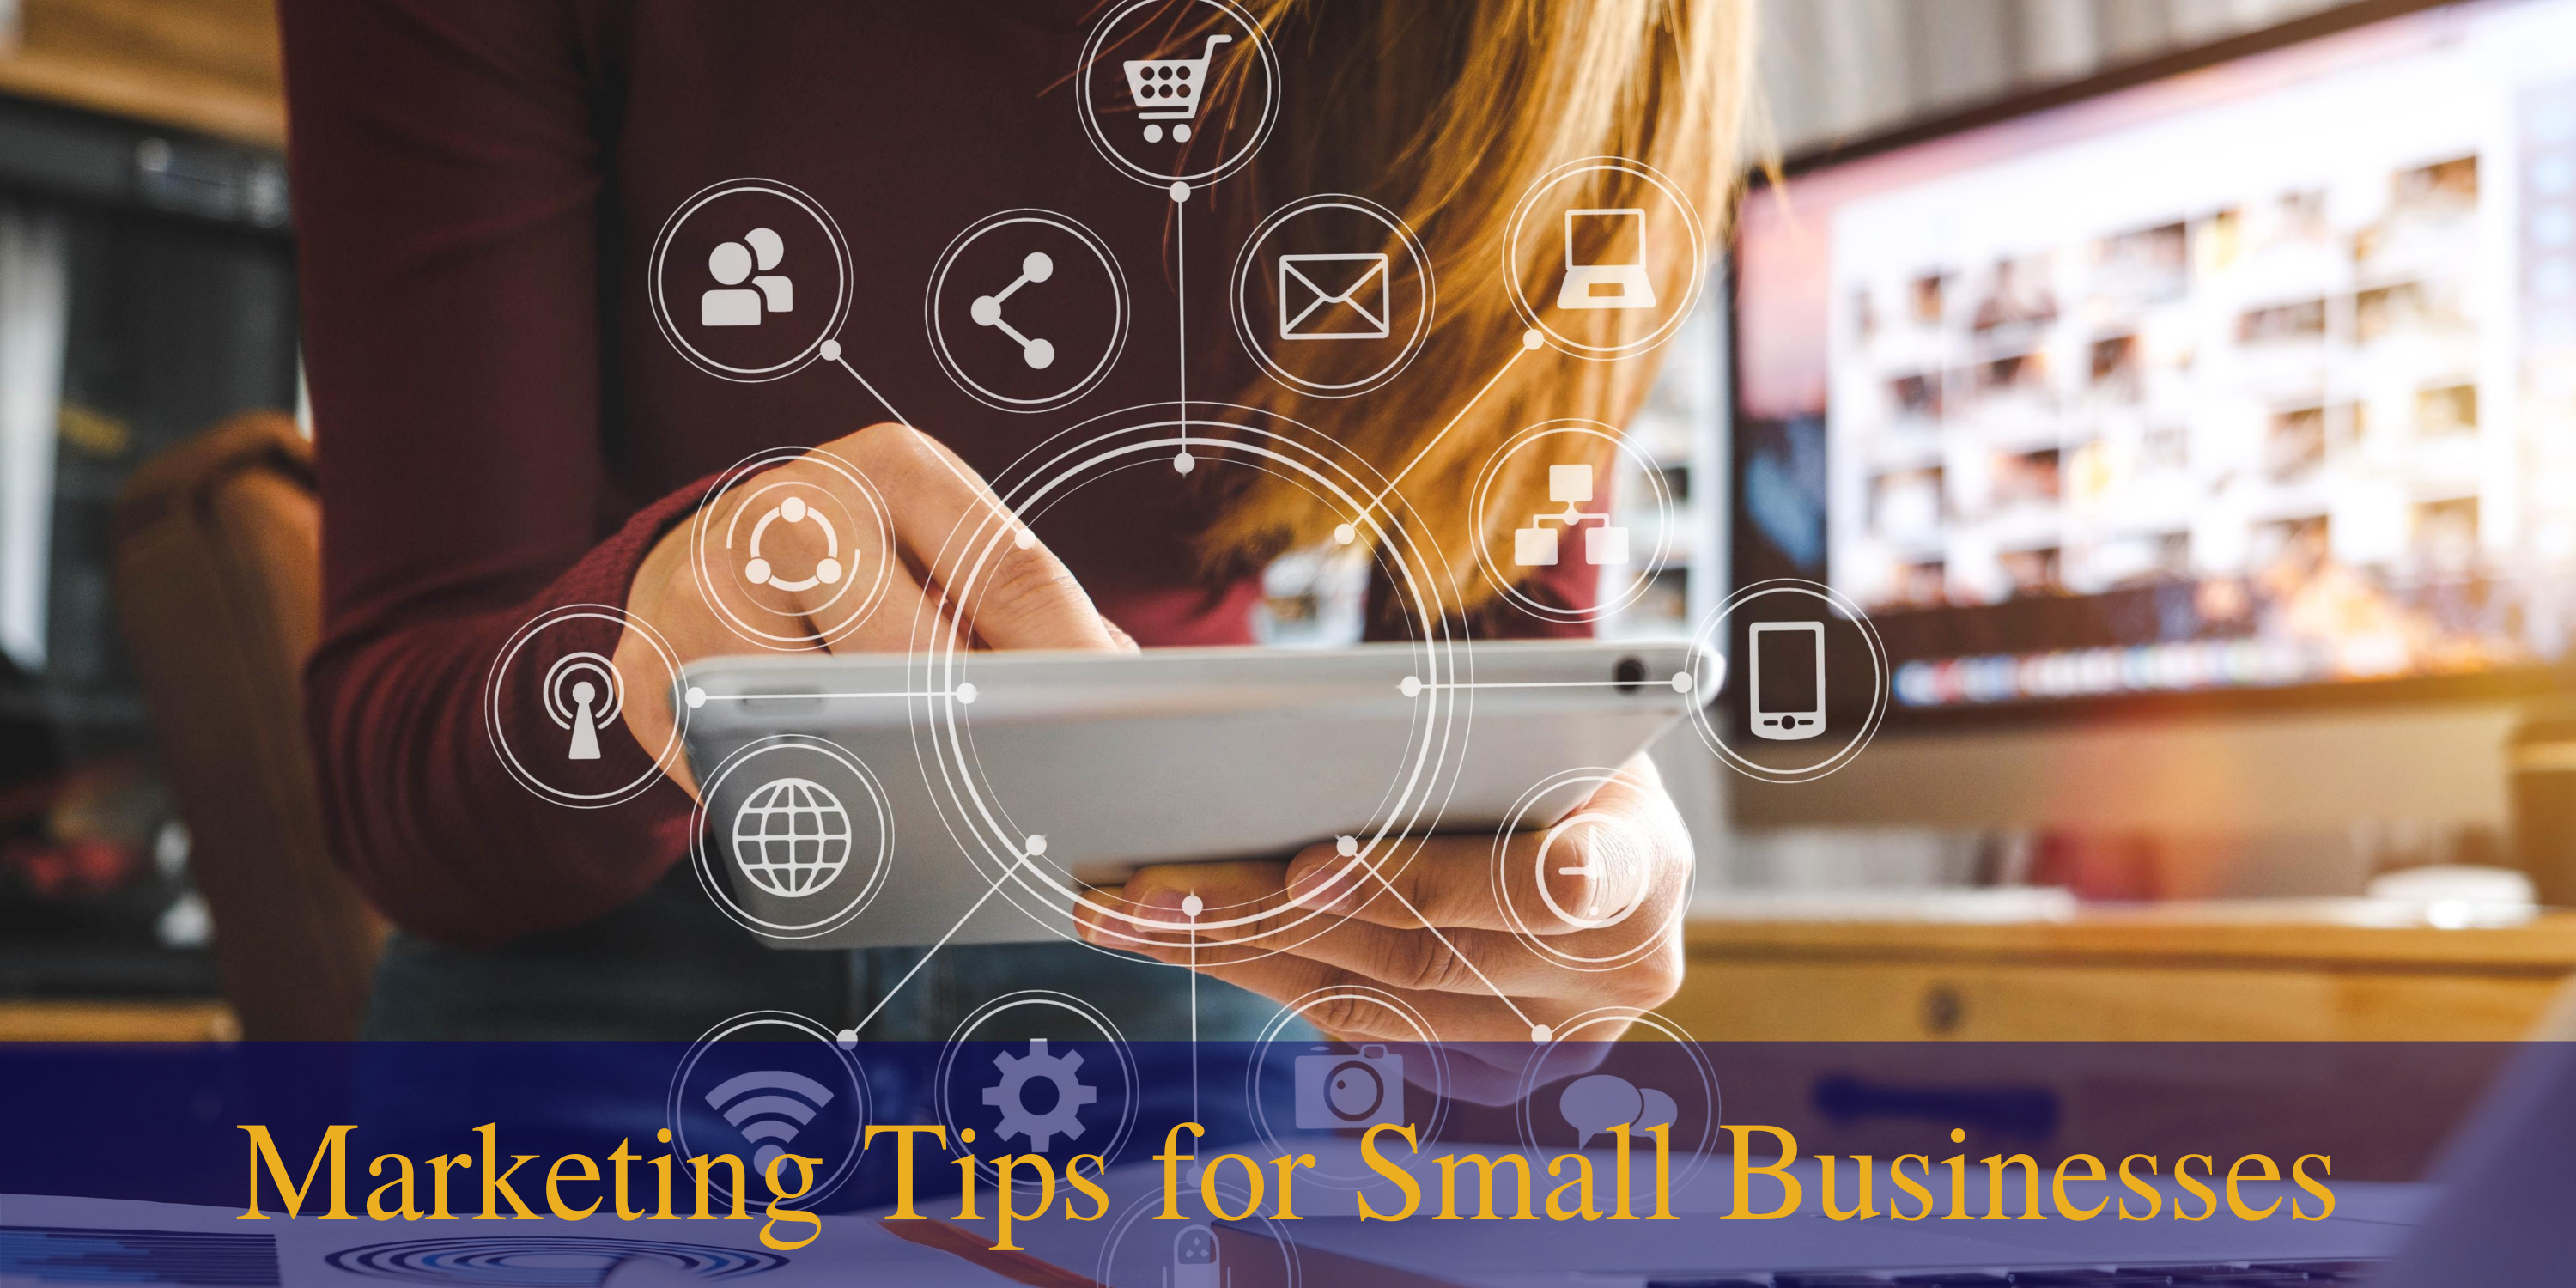 Woman using mobile device with desktop computer in the background to improve marketing with small businesses.